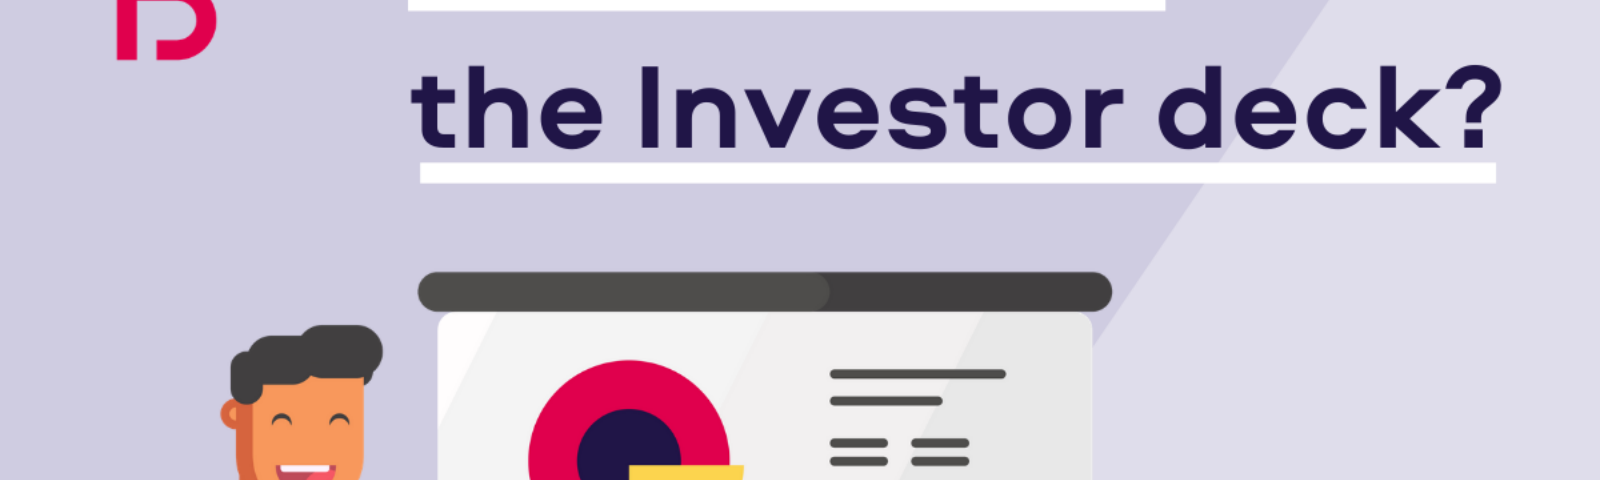 how to build the investor deck